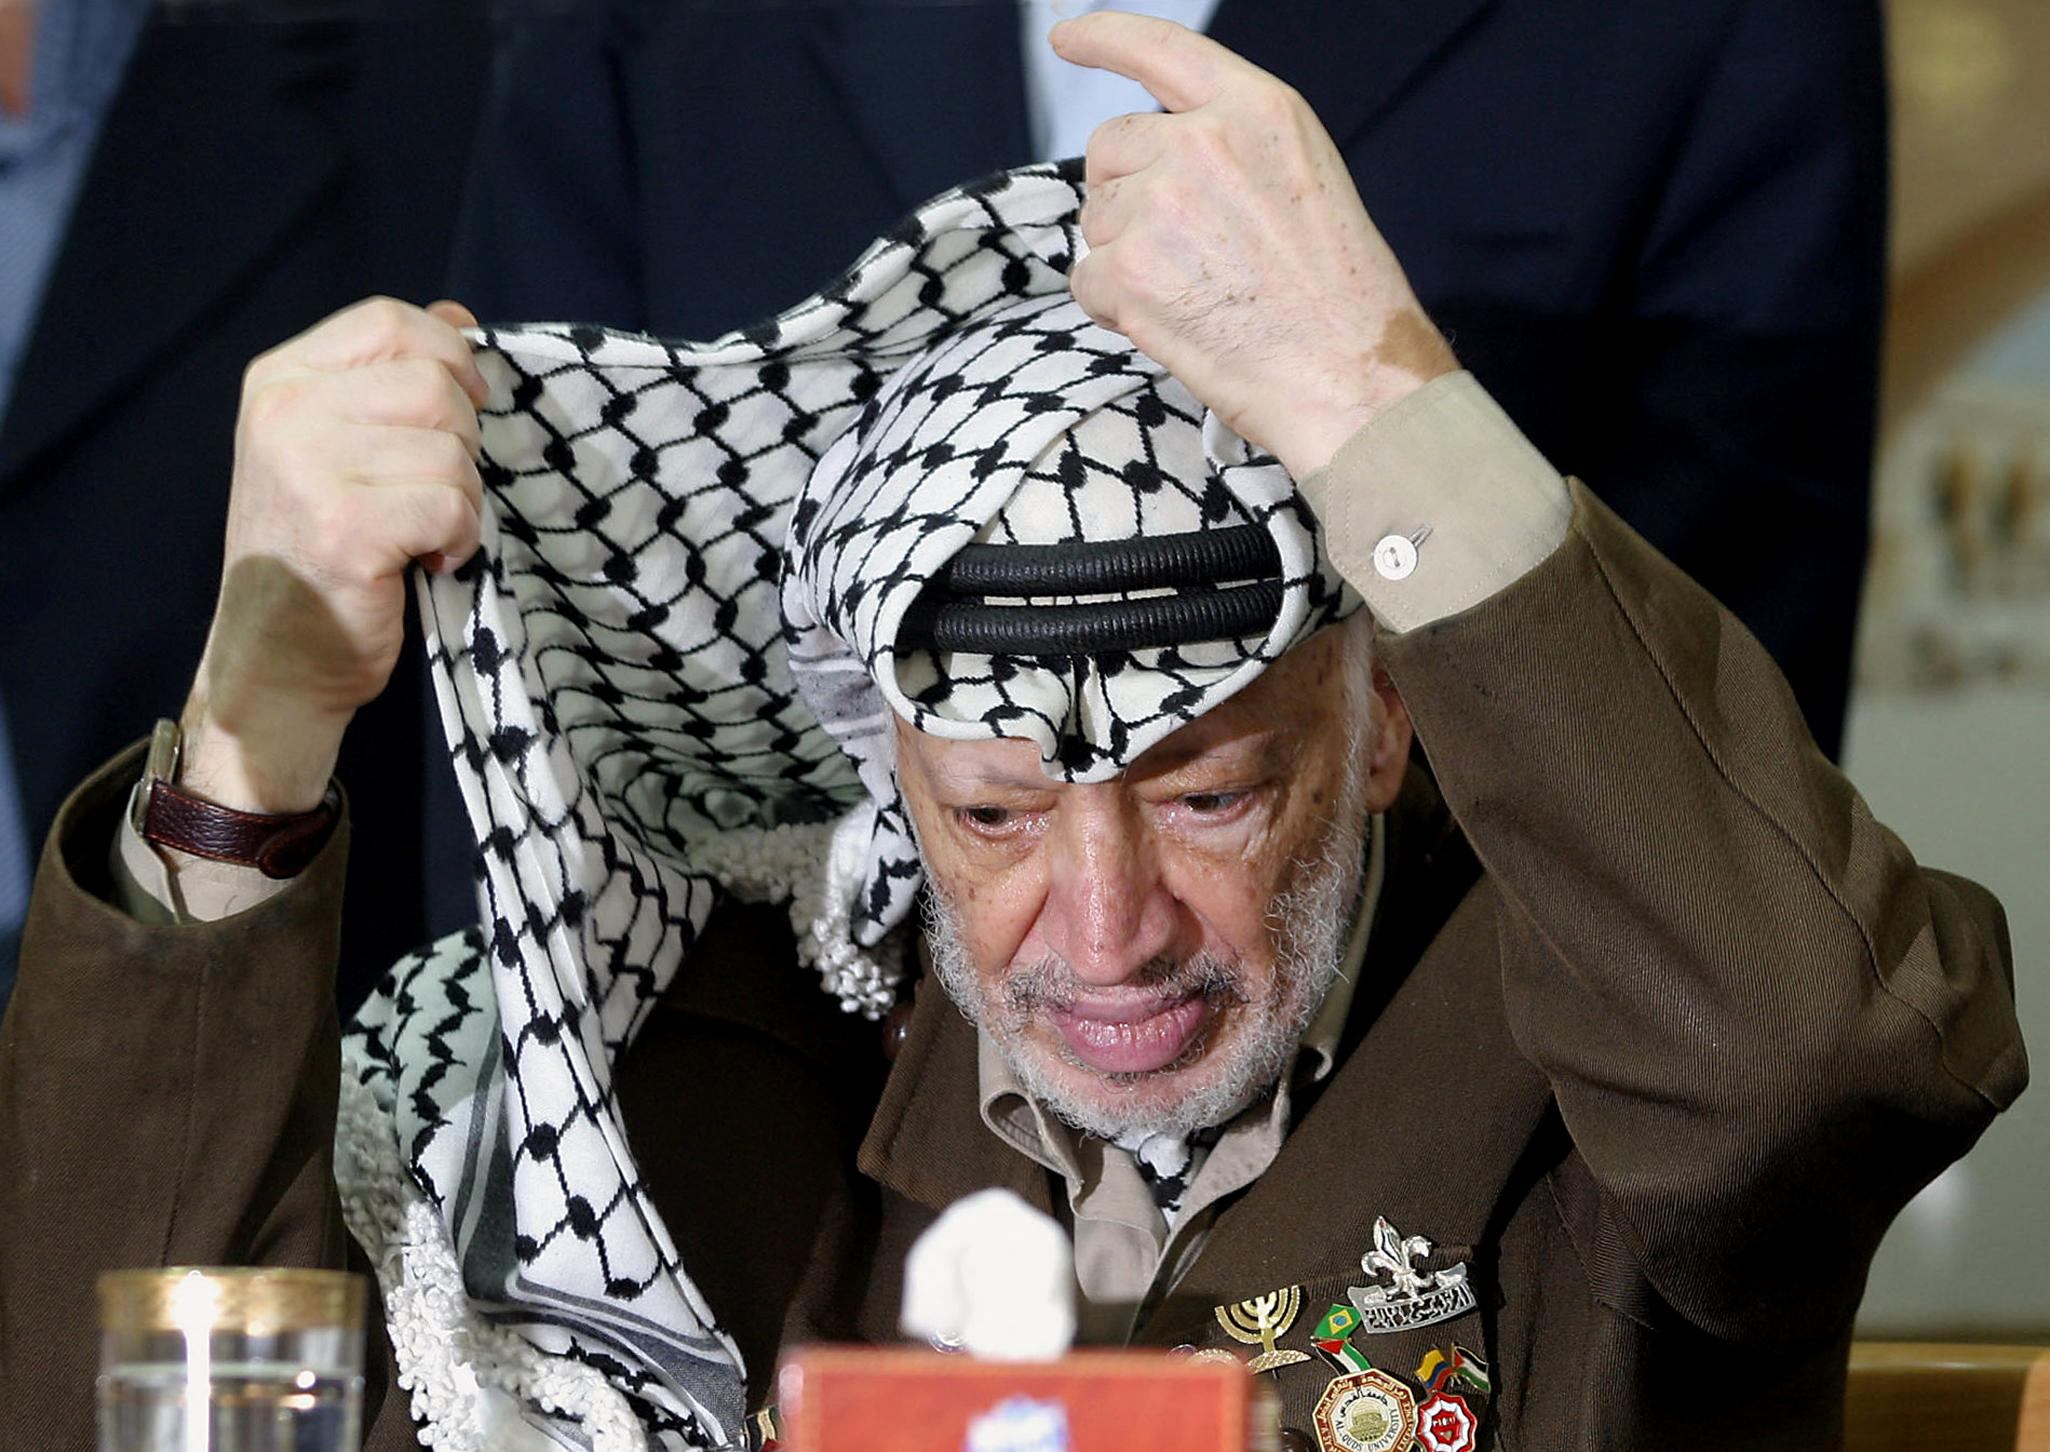 Yasser Arafat lead the Palestinian Liberation Organisation (PLO) from 1969 until his death in 2004 (AFP)